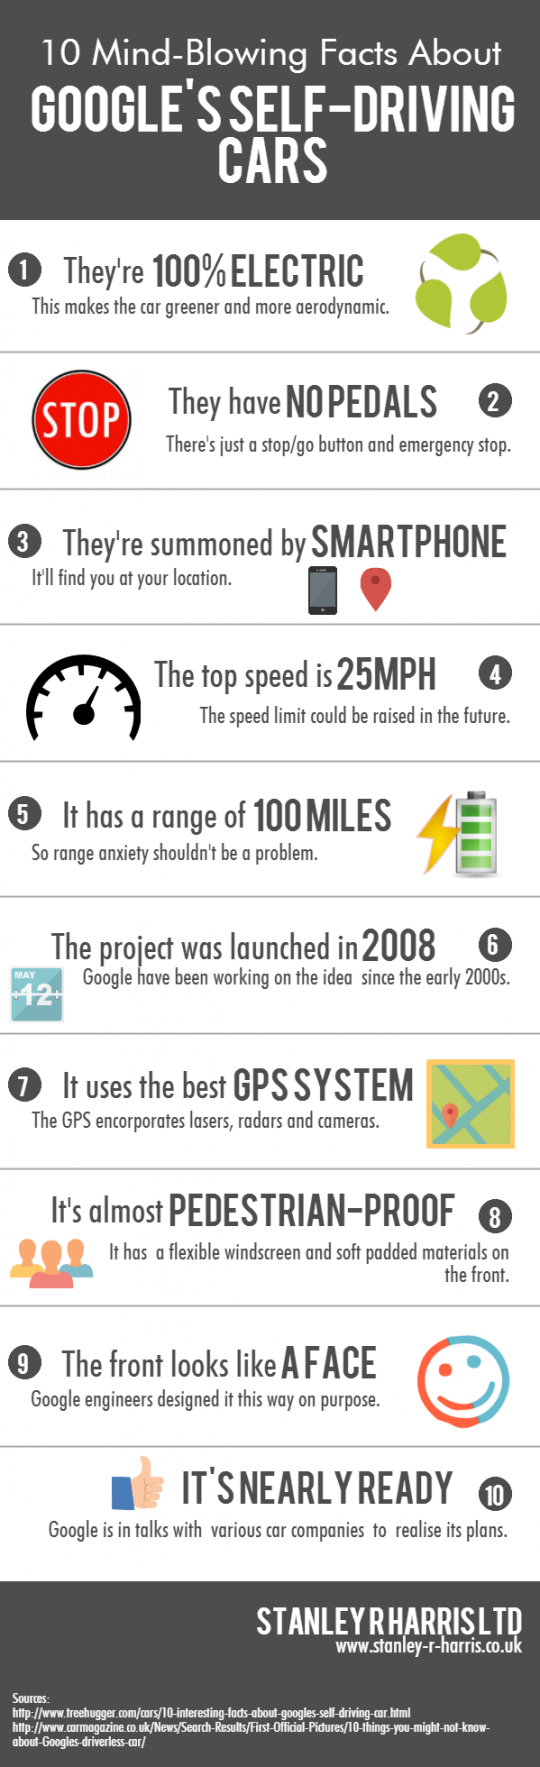 10 Mind-Blowing Facts about Google�s Self-Driving Cars